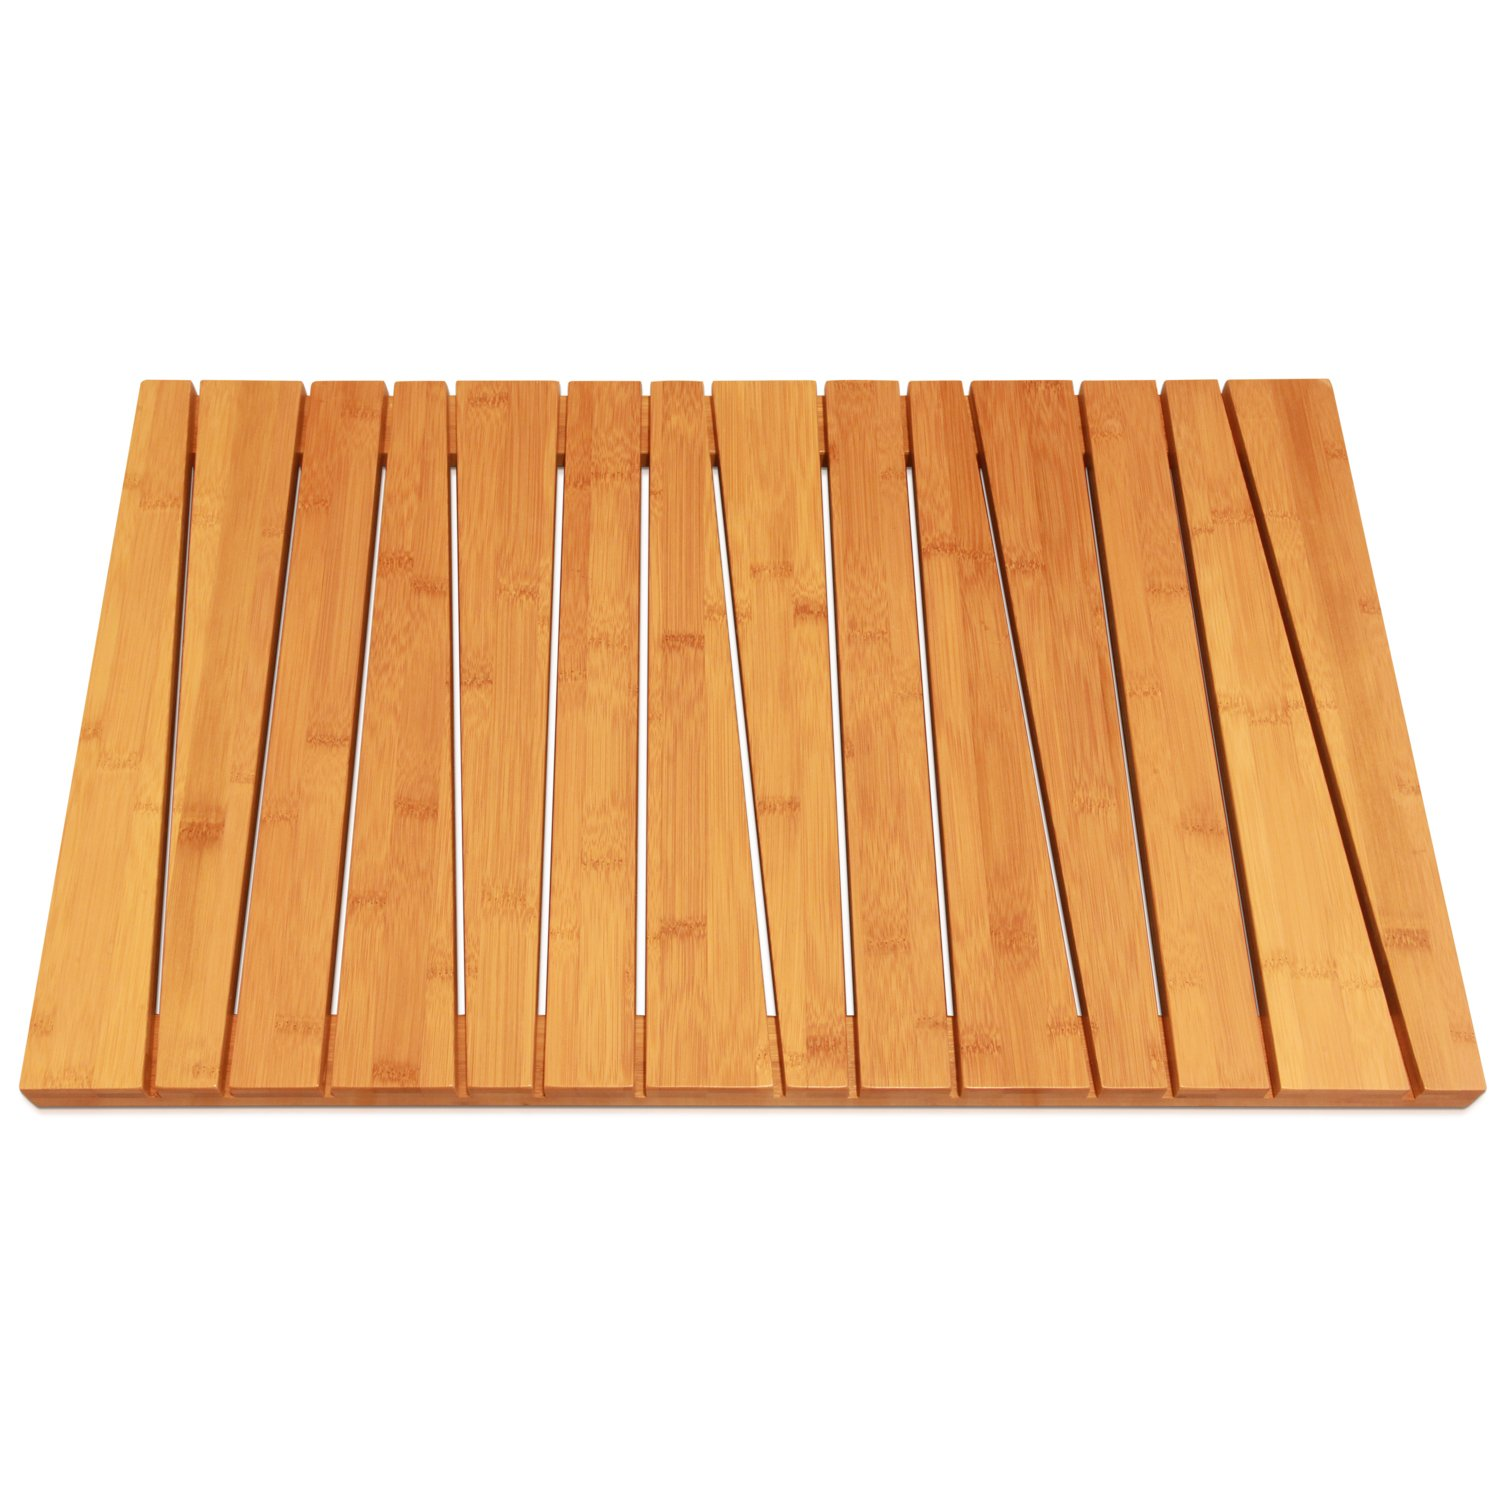 Amazon Bamboo Deluxe Shower Floor and Bath Mat Skid